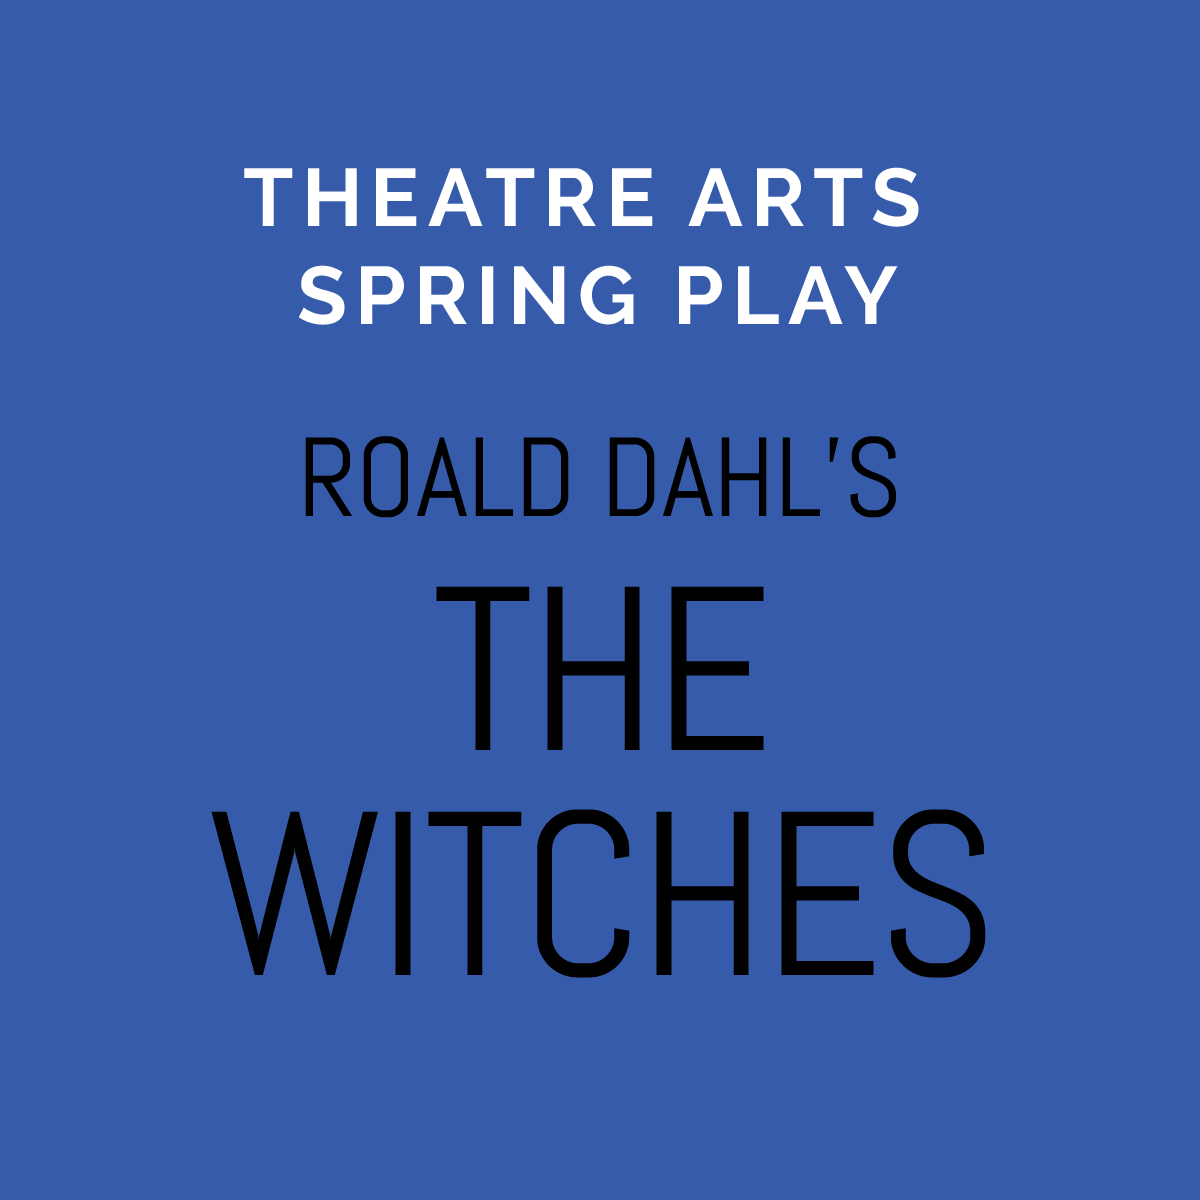 """Theatre Arts Spring Play - Roald Dahl's """"The Witches"""""""